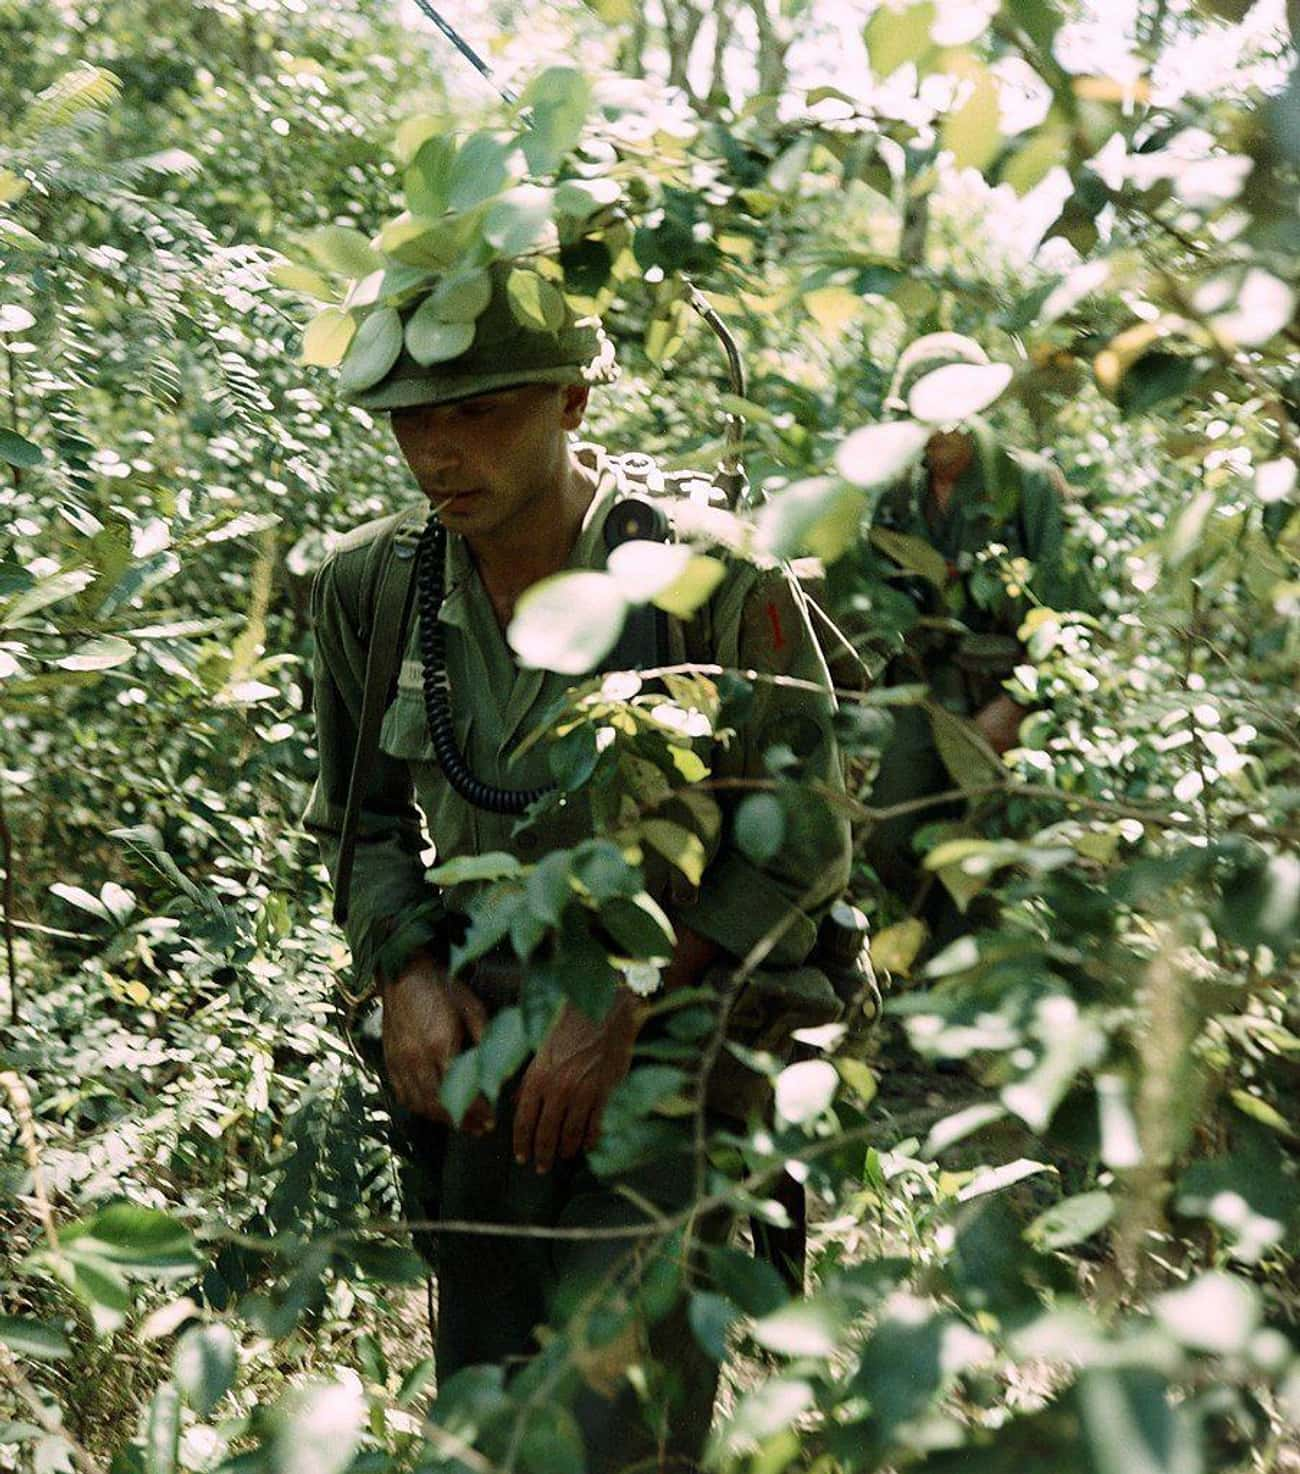 No One Asked, And No One Cared is listed (or ranked) 1 on the list Vietnam Veterans Describe What It Was Like Coming Back To The States